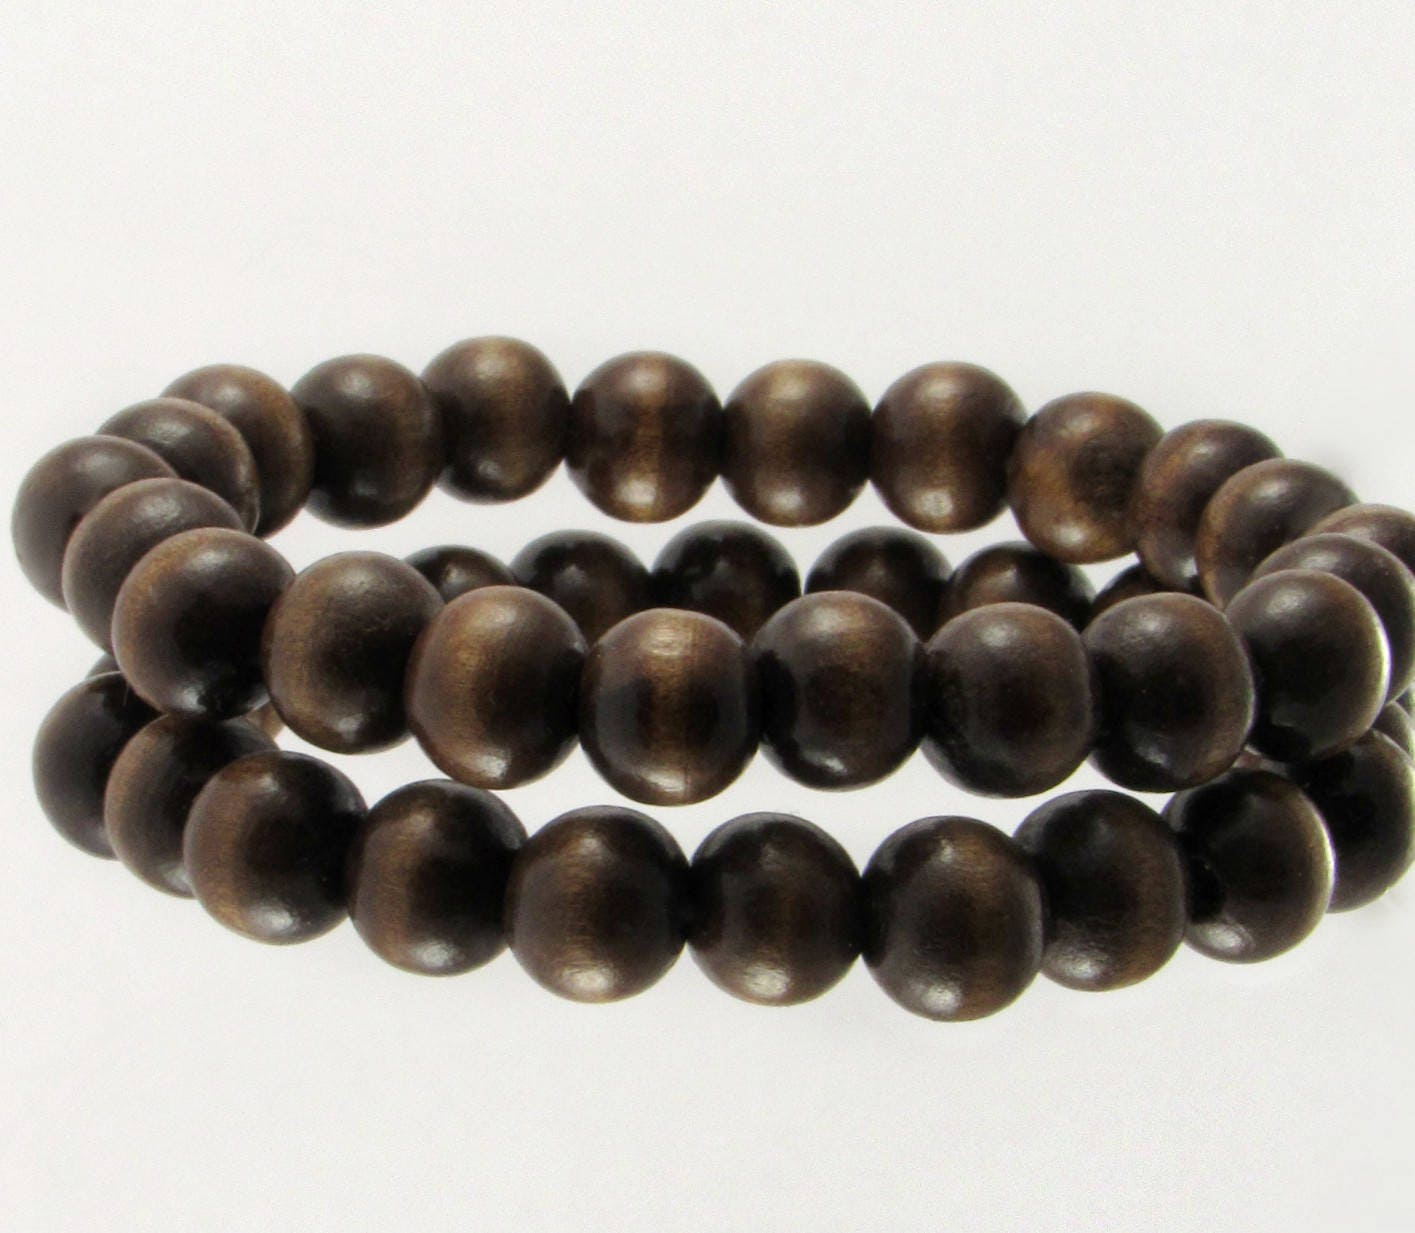 bead onyx plus stretch shiny toggle necklace bracele set boy matte bracelet original wood natural beads black for valiant products mens boybeads